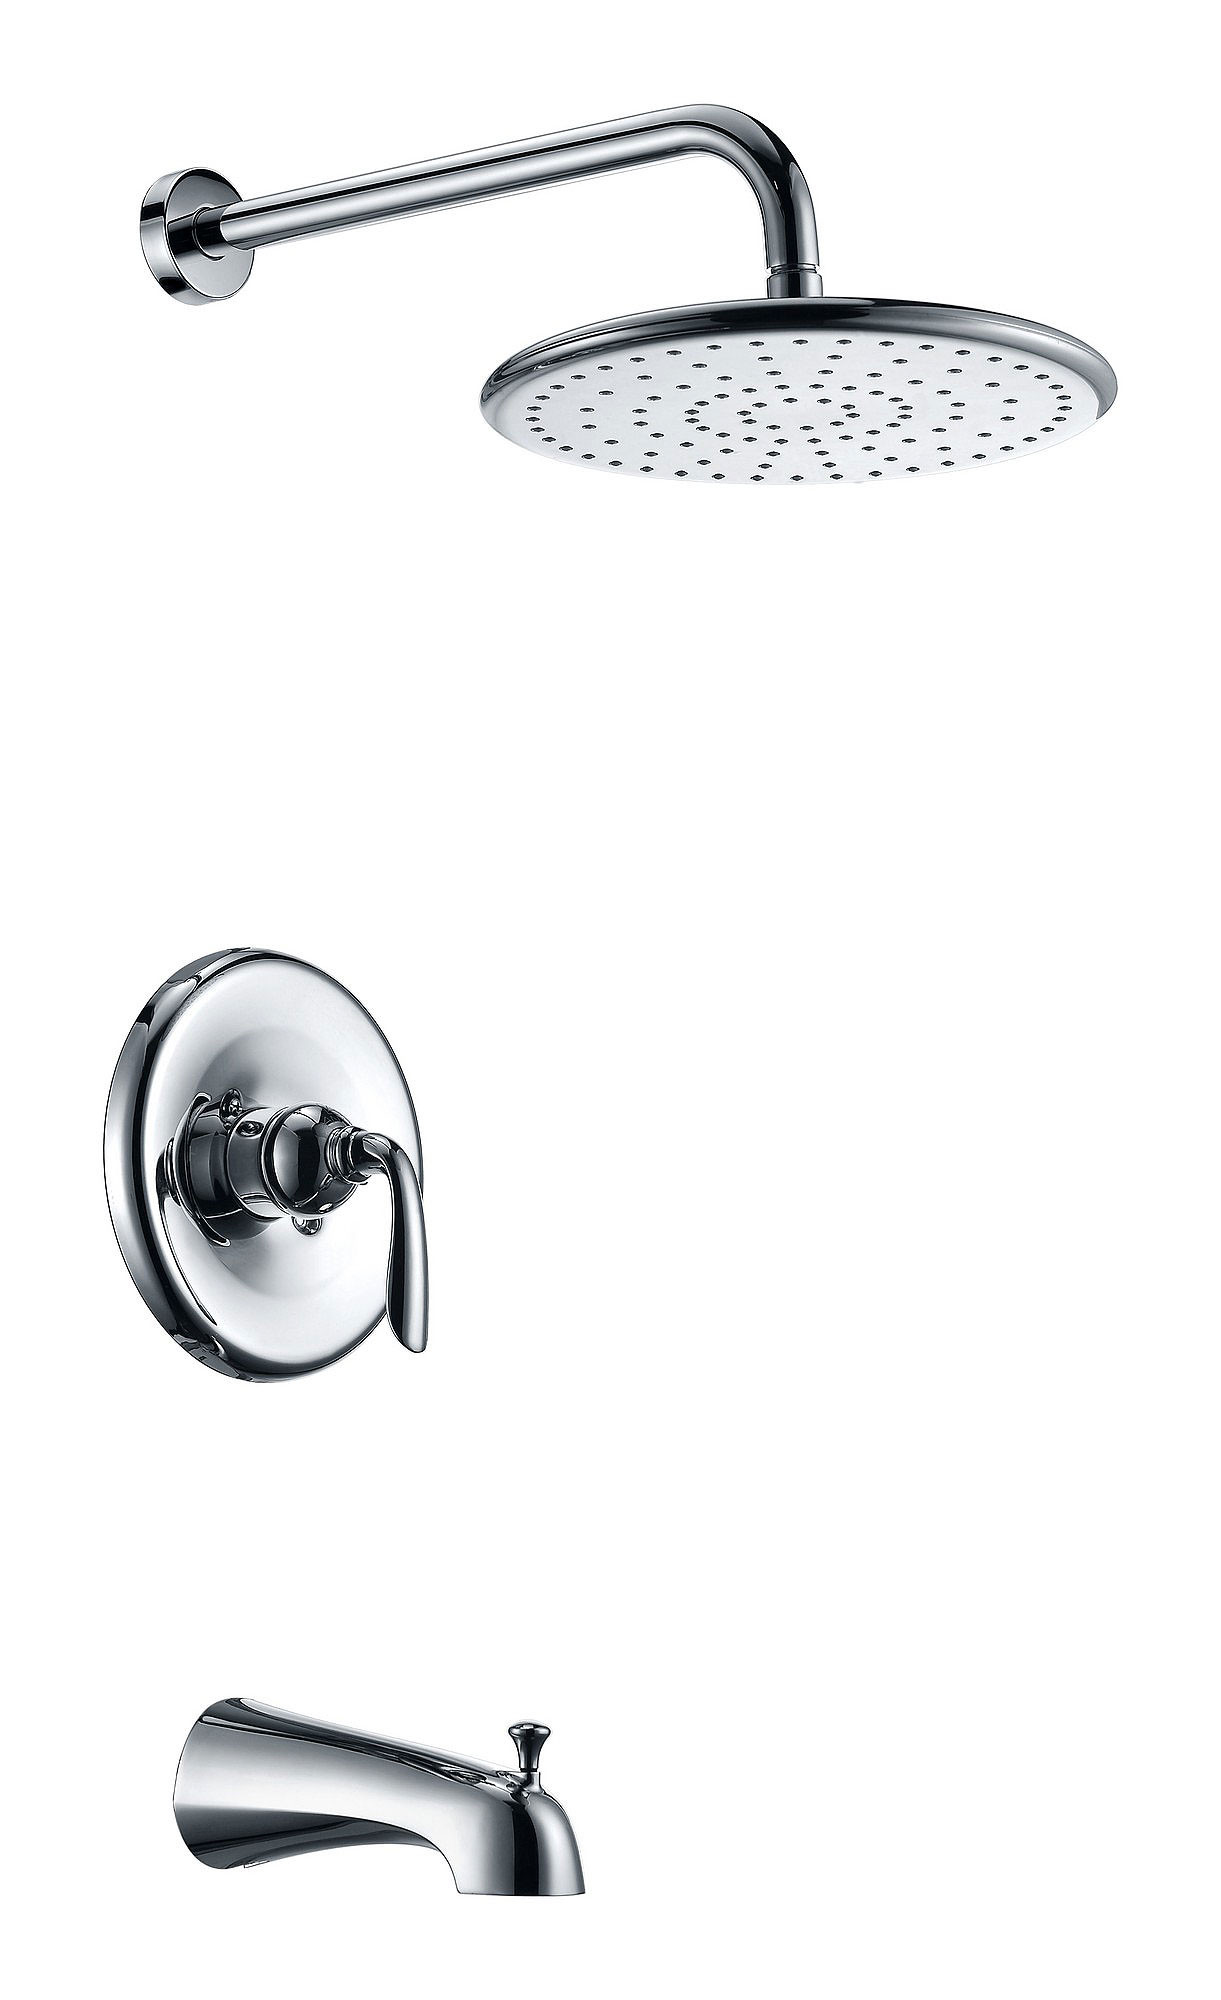 ANZZI SH-AZ032 Meno Single Handle Tub and Shower Faucet In Polished Chrome